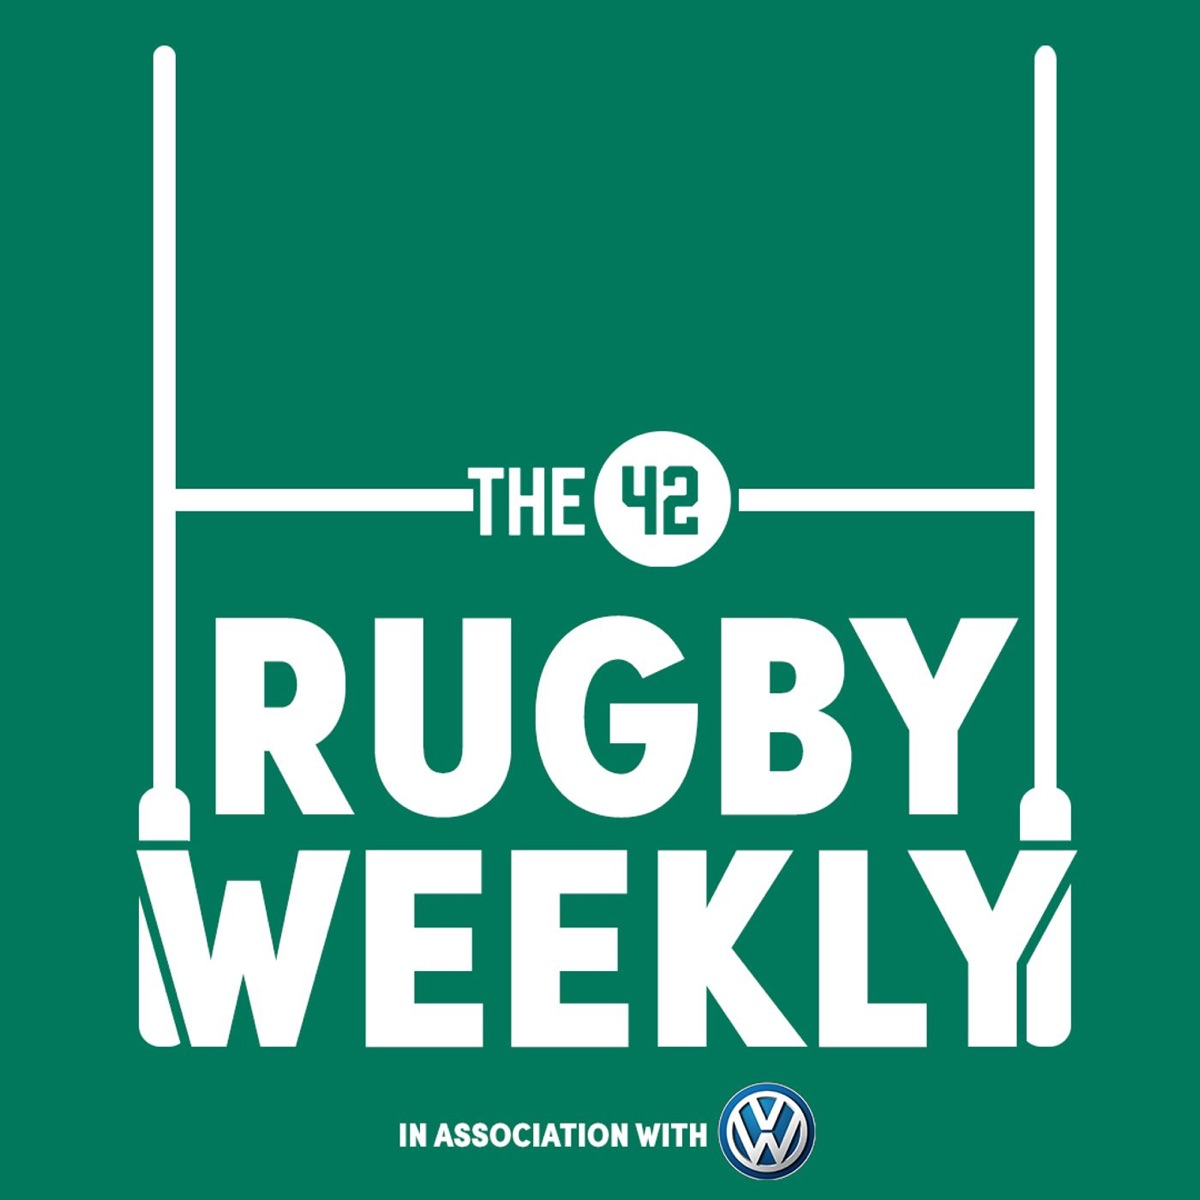 The42 Rugby Weekly